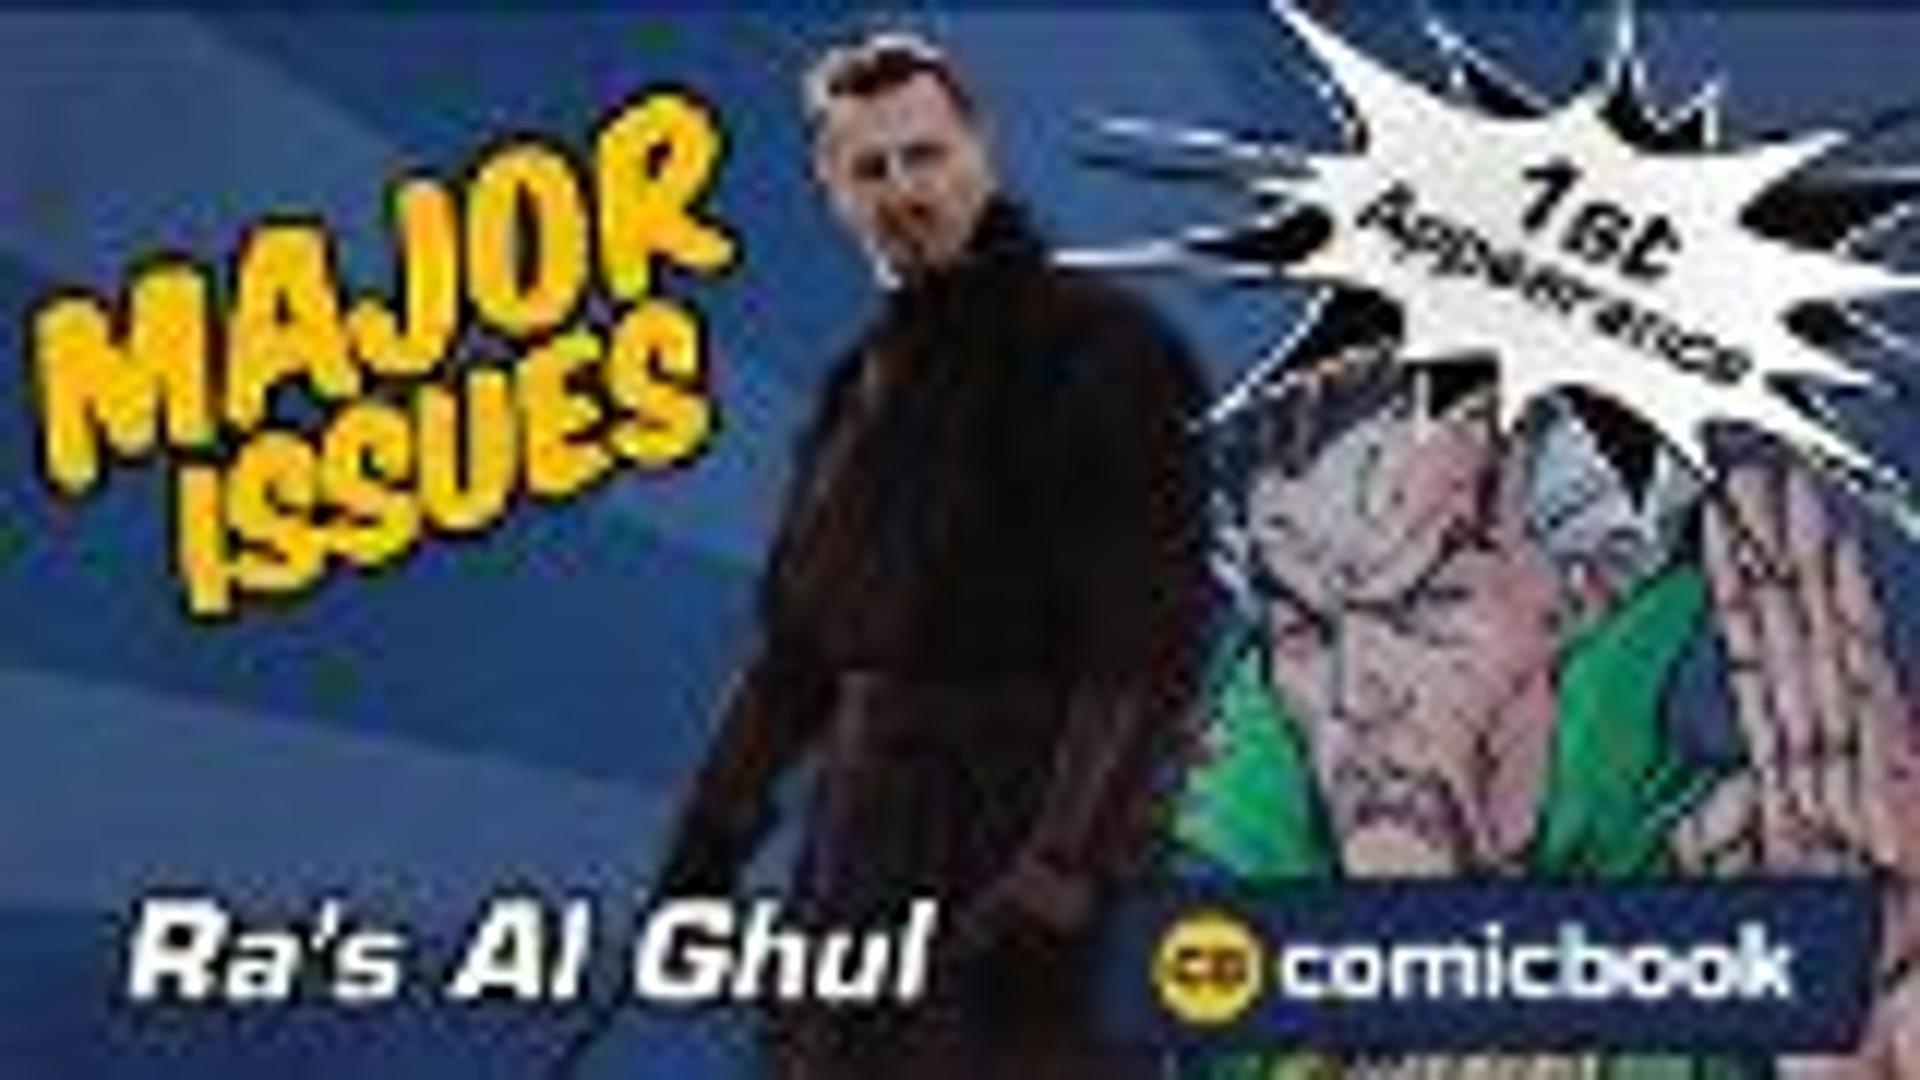 Ra's Al Ghul's First Appearance - Major Issues screen capture